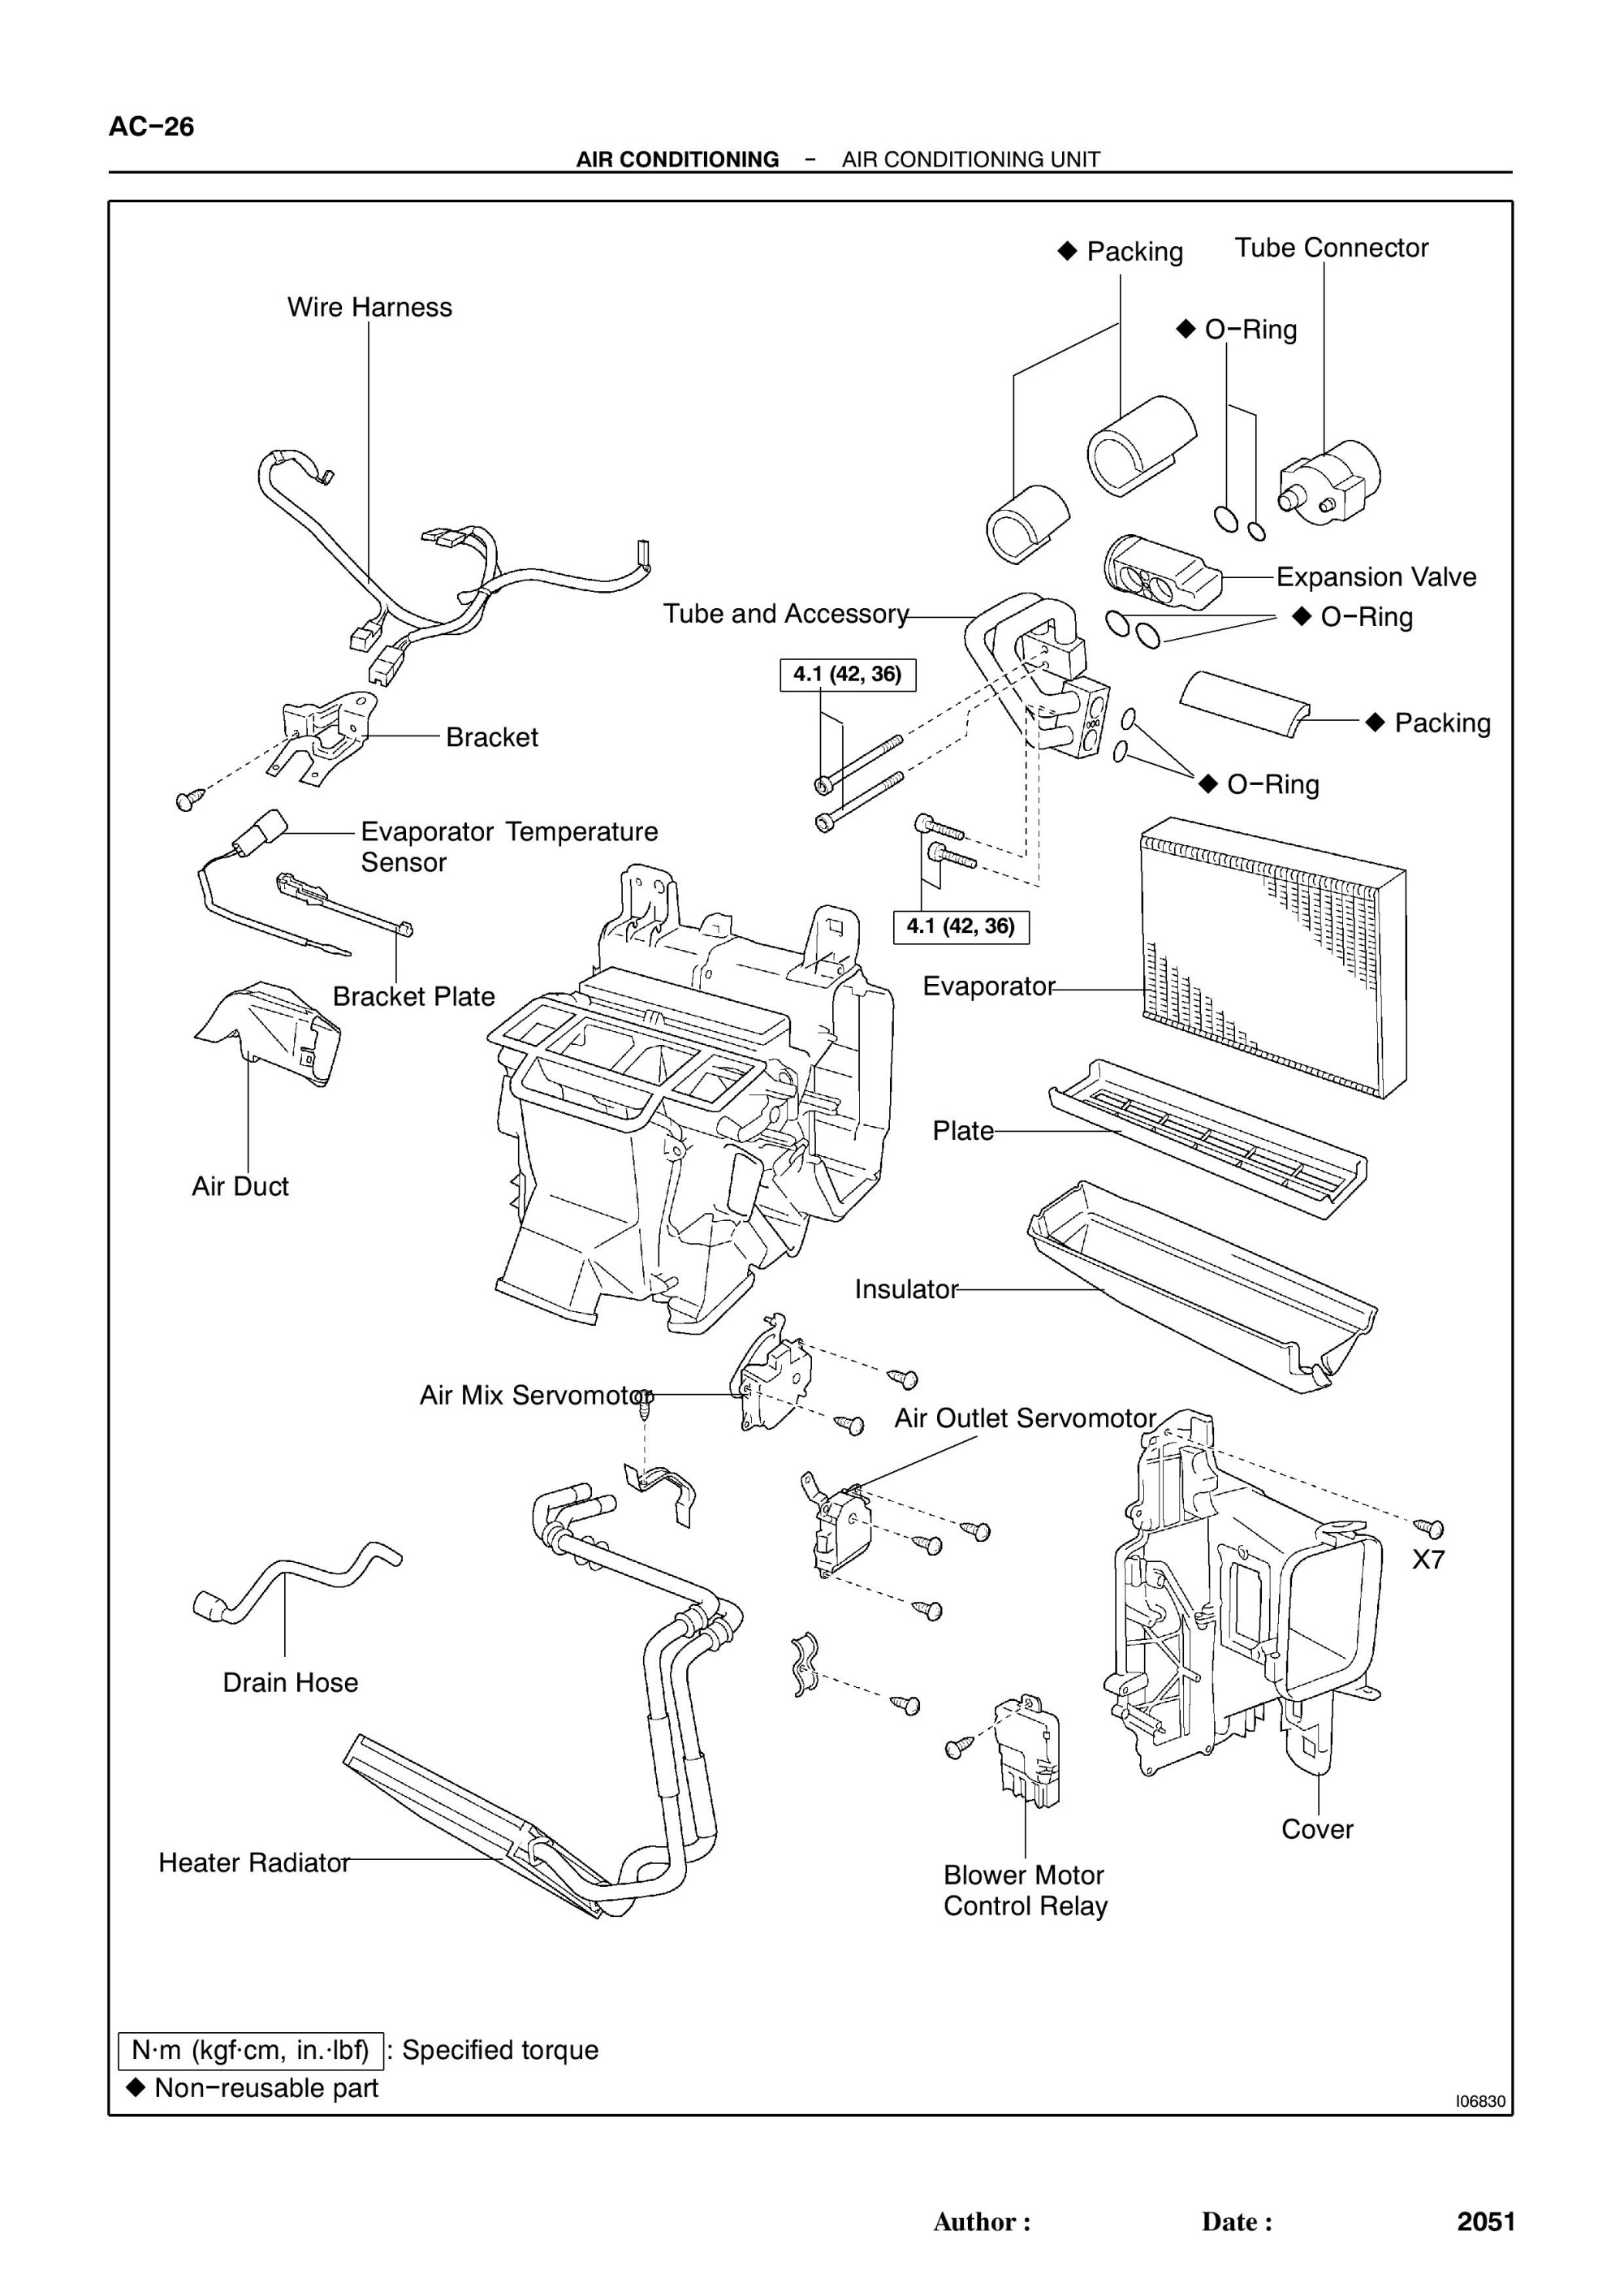 hight resolution of lexus rx300 engine diagram lexus rx300 engine diagram lexus wiring diagrams instructions of lexus rx300 engine